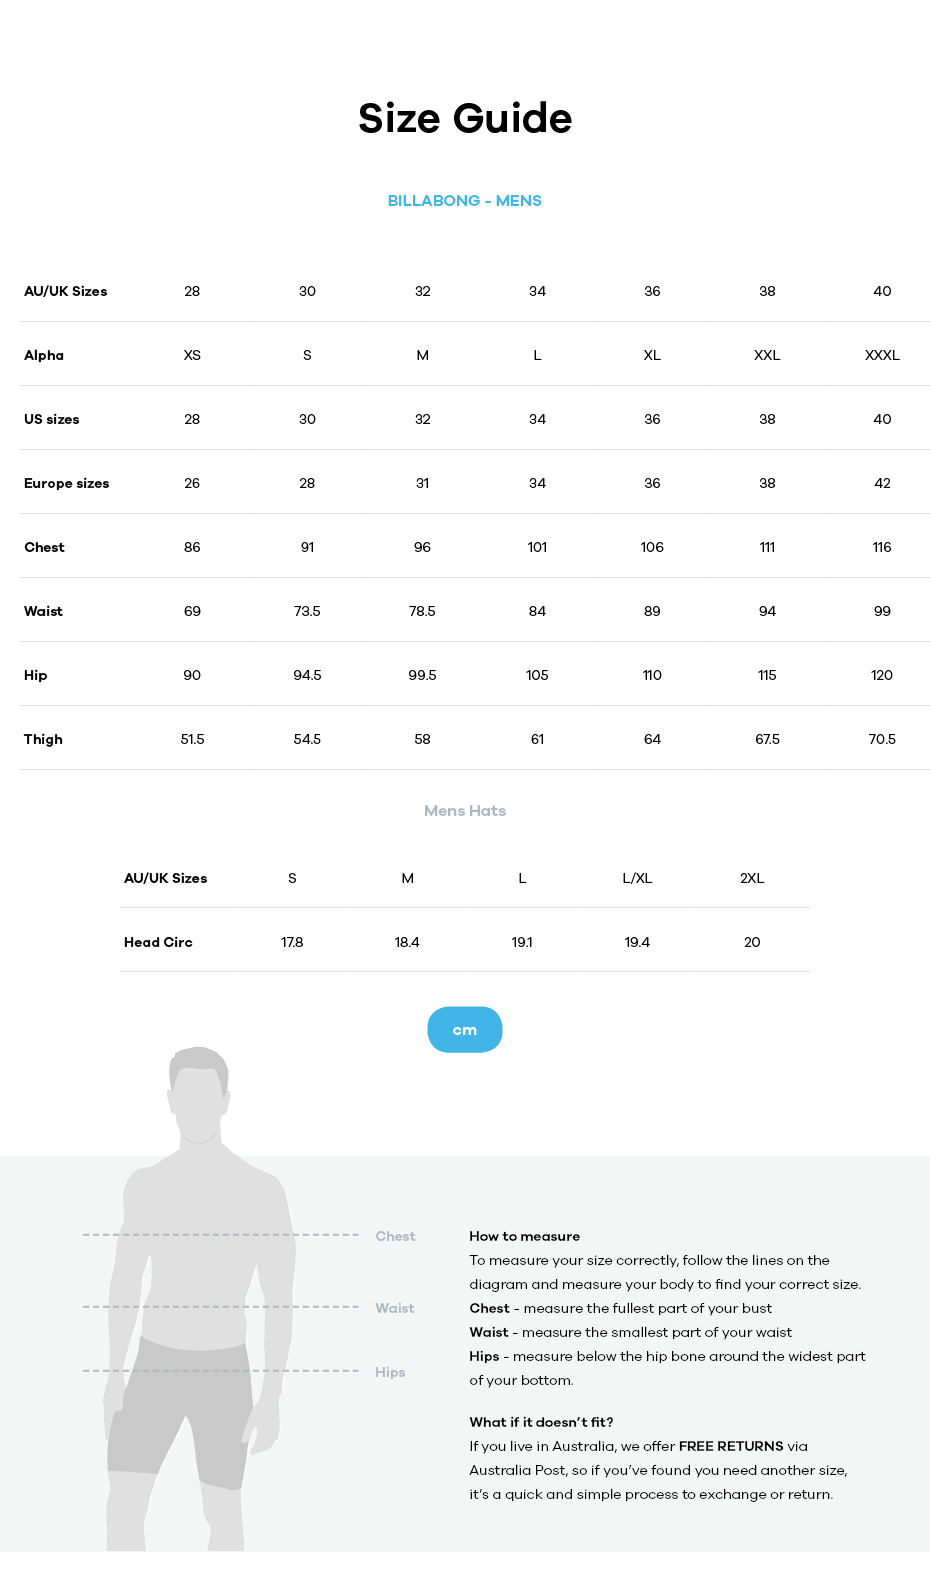 Billabong size guide